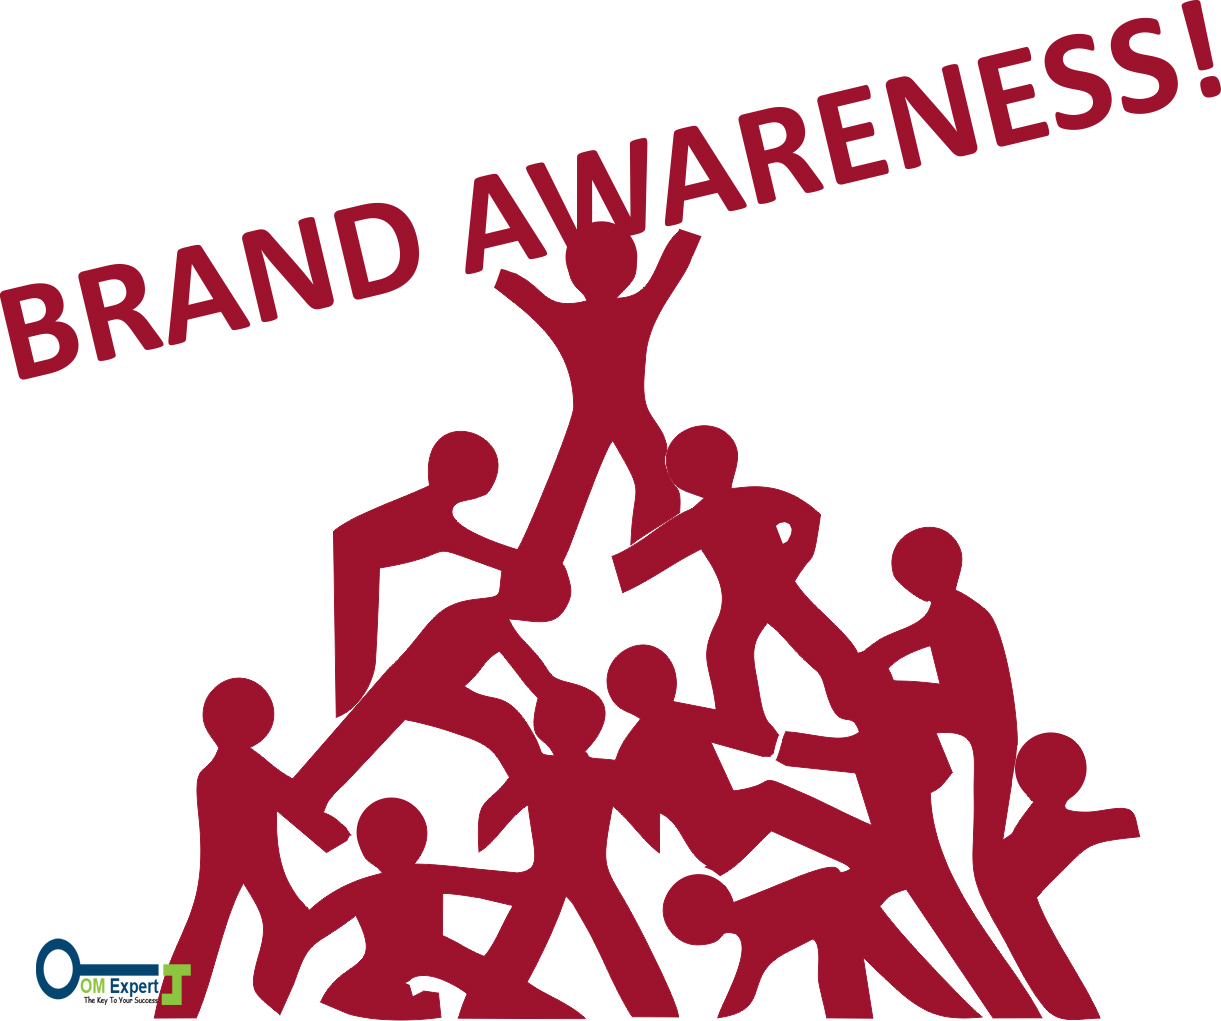 brand loyalty awarness promotion Learn how to increase brand awareness and drive loyalty through these   brackets & polls are a great way to collect important data to promote.